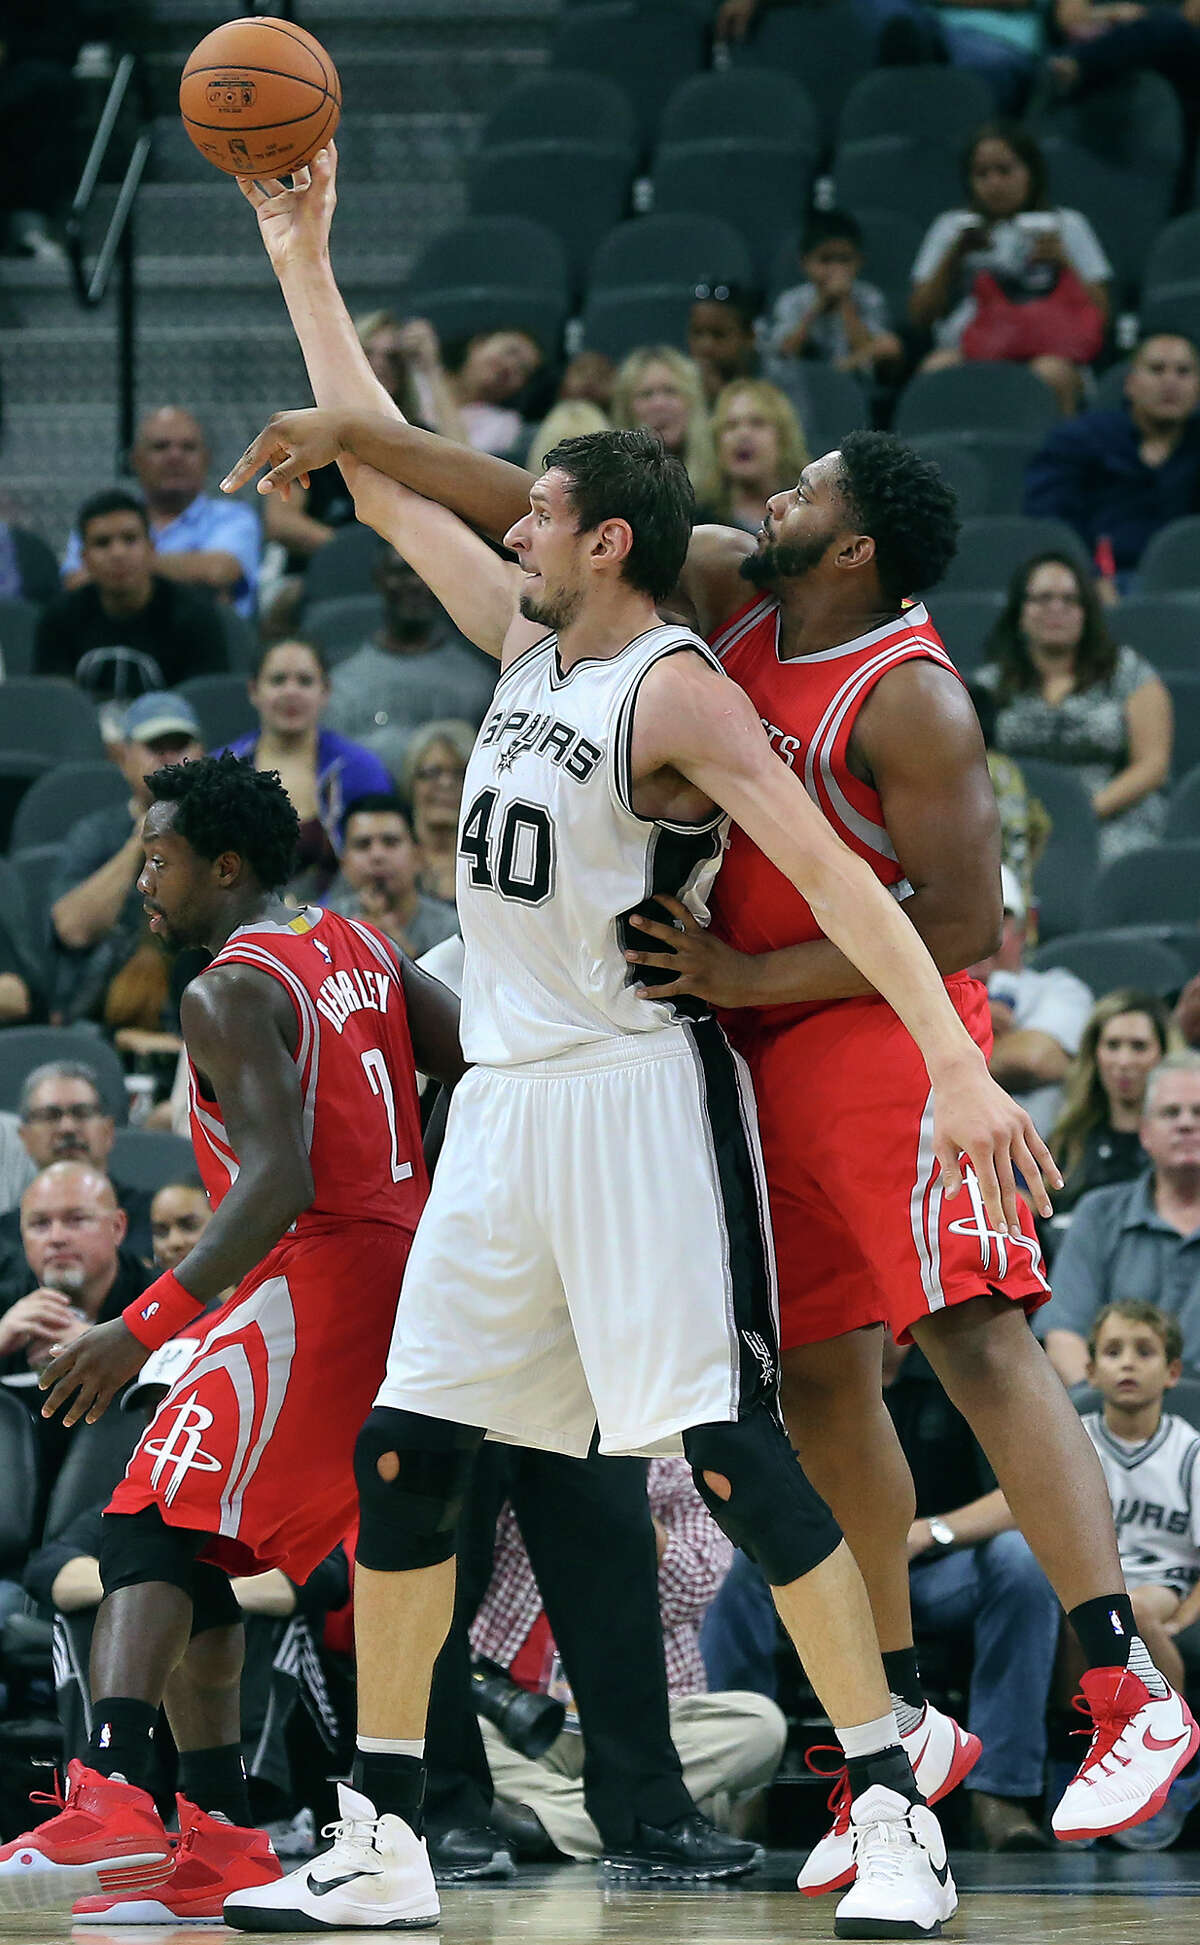 Boban Marjanovic posts up on Joshua Smith as the Spurs host the Rockets at the AT&T Center on October 23, 2015.